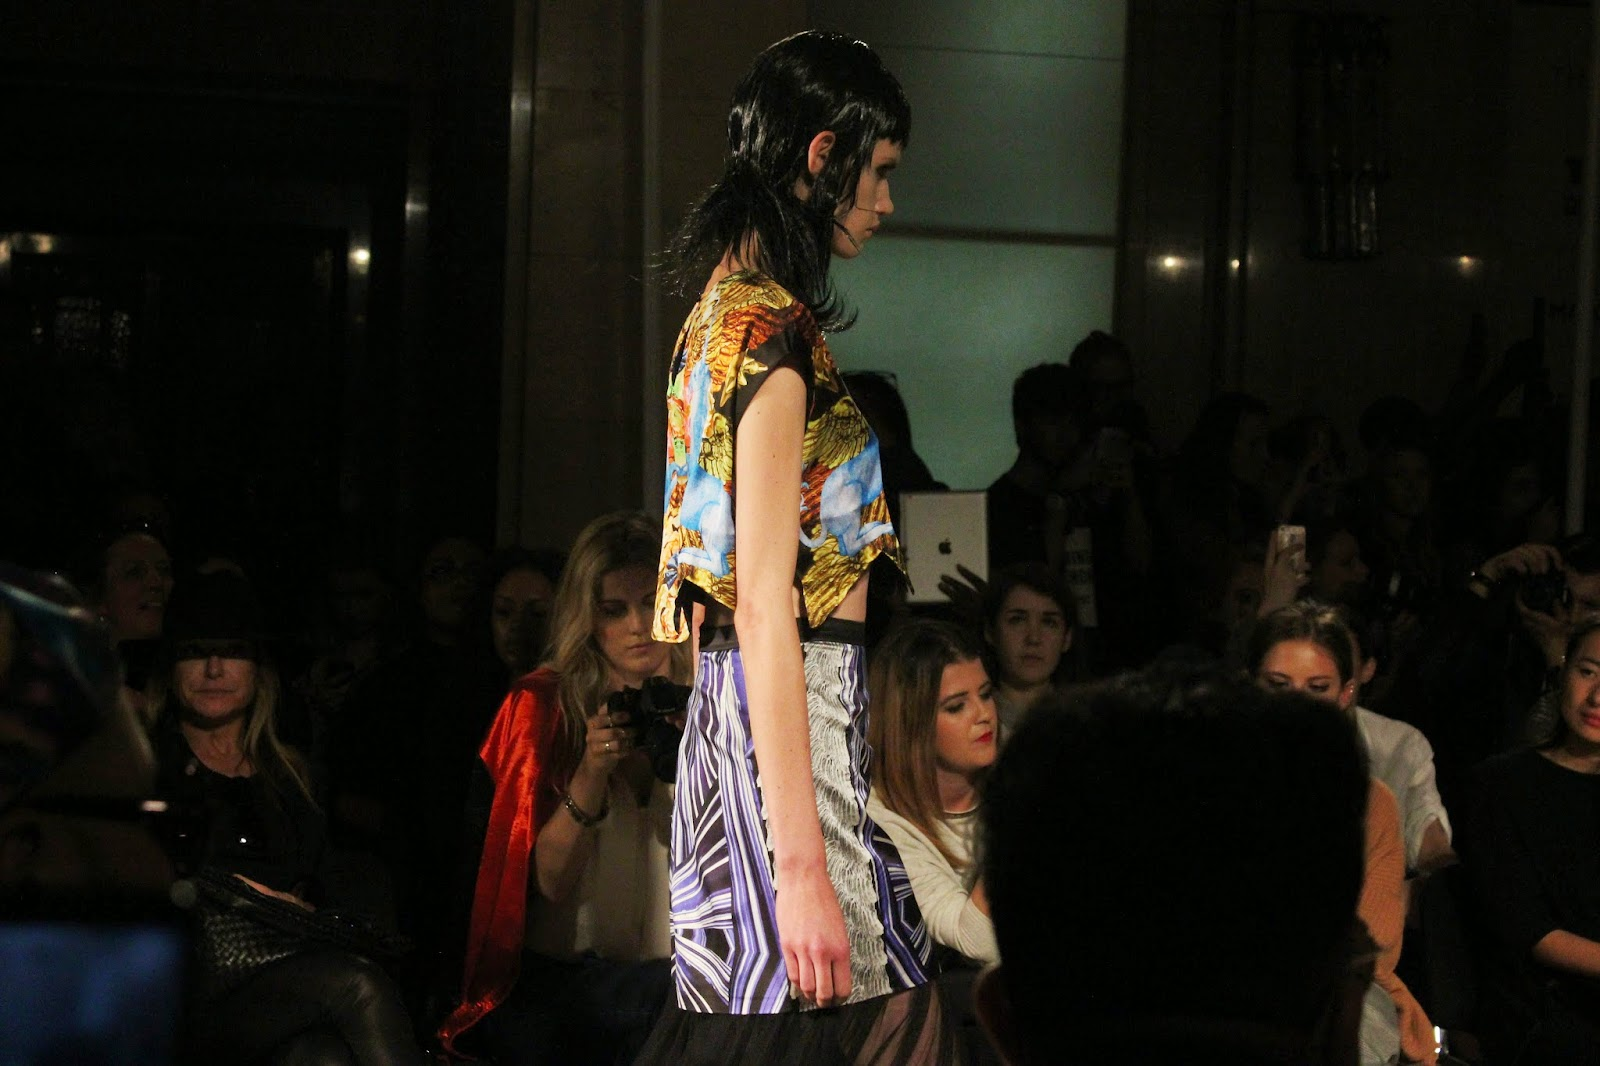 london-fashion-week-2014-lfw-spring-summer-2015-blogger-fashion-Dora-Abodi-catwalk-models-freemasons hall-fashion-scout-crop-top-skirt